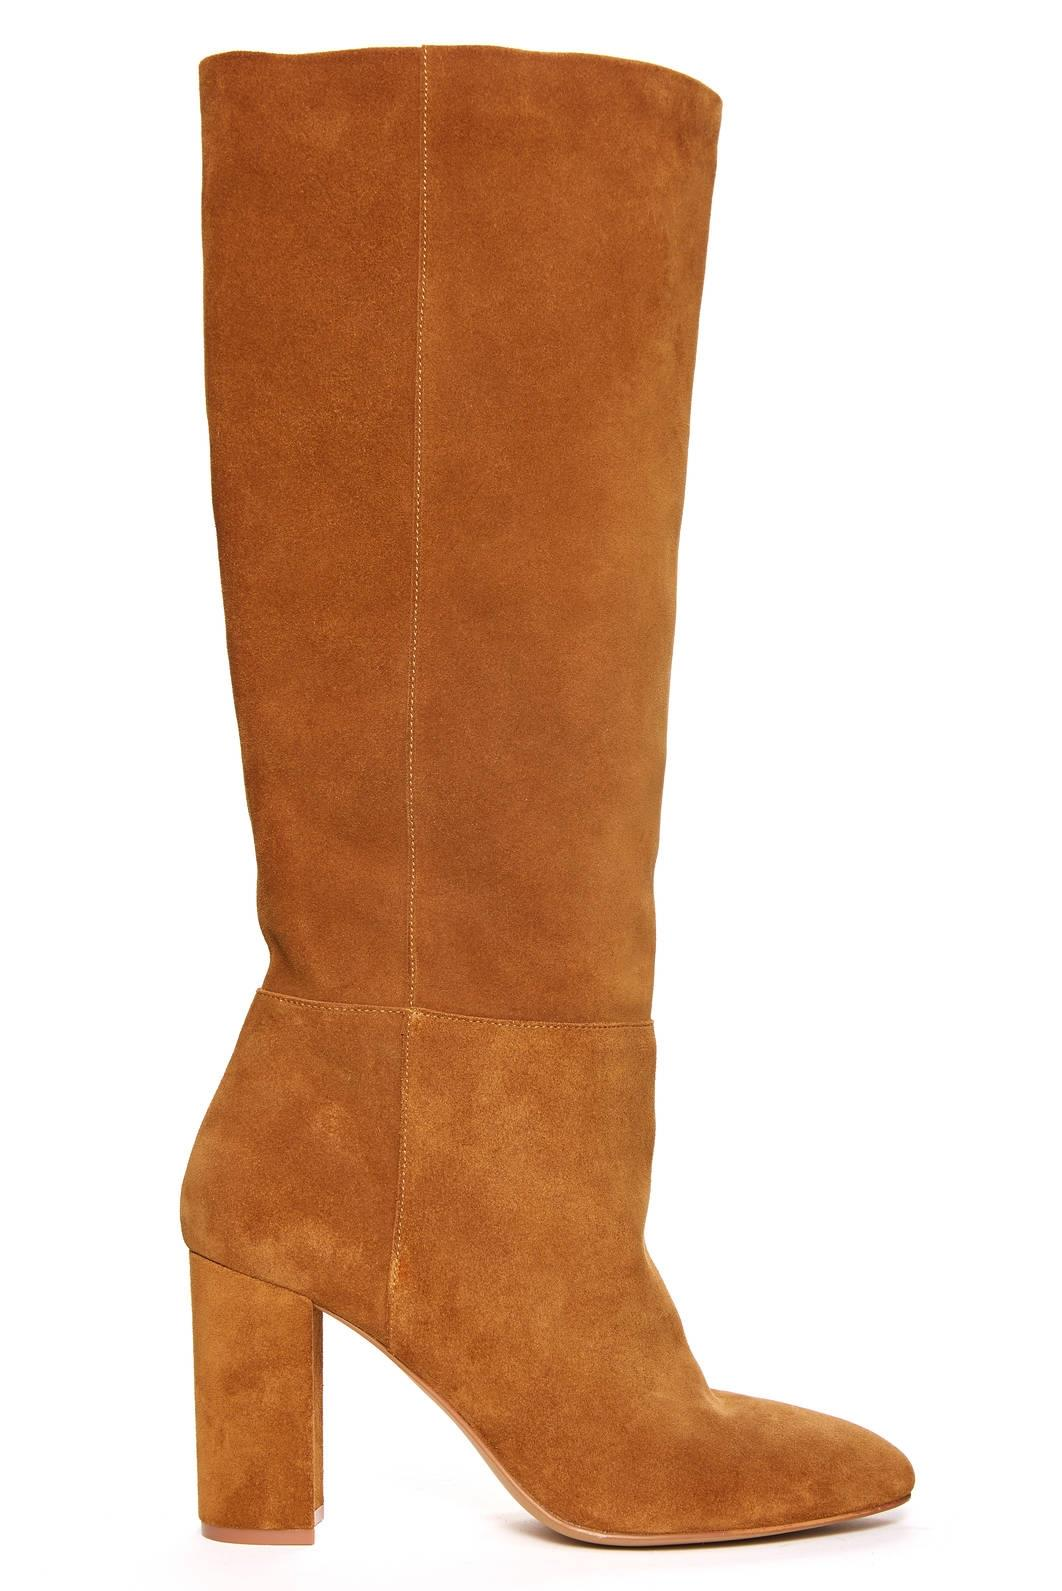 SUEDE TALL BOOT HONEY BROWN BROWN